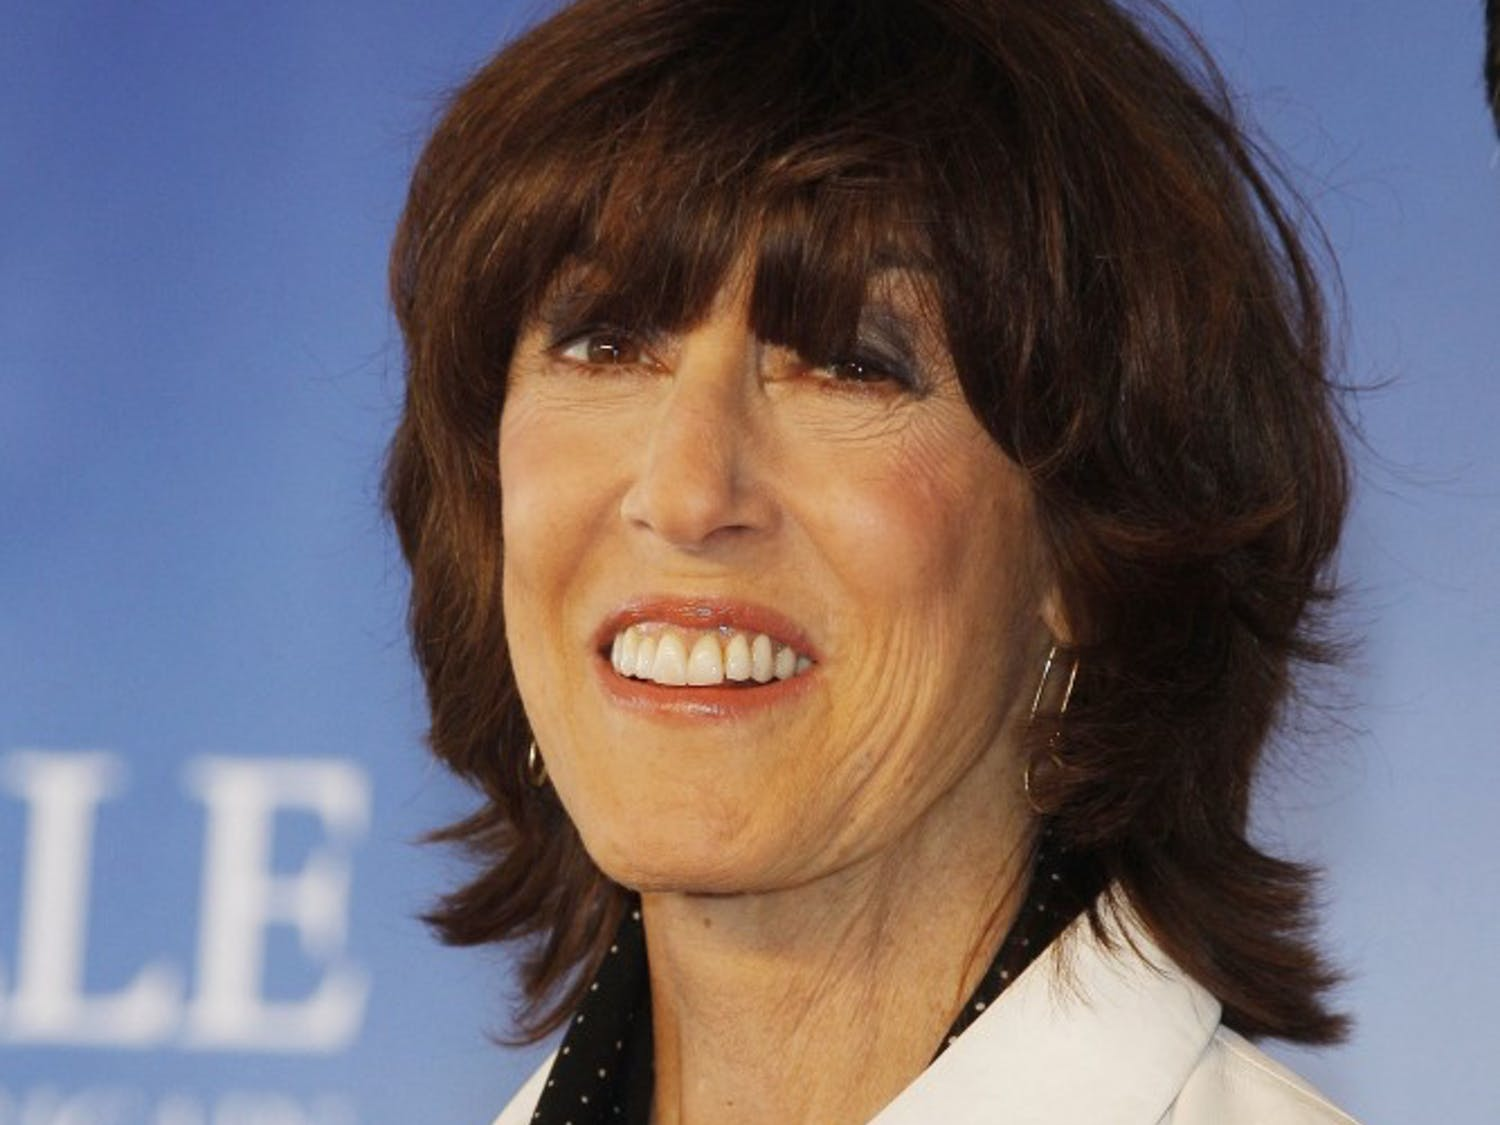 """Director Nora Ephron, seen in this file photo from September 2009, died June 26, 2012, in New York. She was 71. Ephron's hit movies included: """"Sleepless in Seattle,"""" """"When Harry Met Sally,"""" and """"Julie & Julia."""" (Denis Guignebourg/Abaca Press/MCT)"""